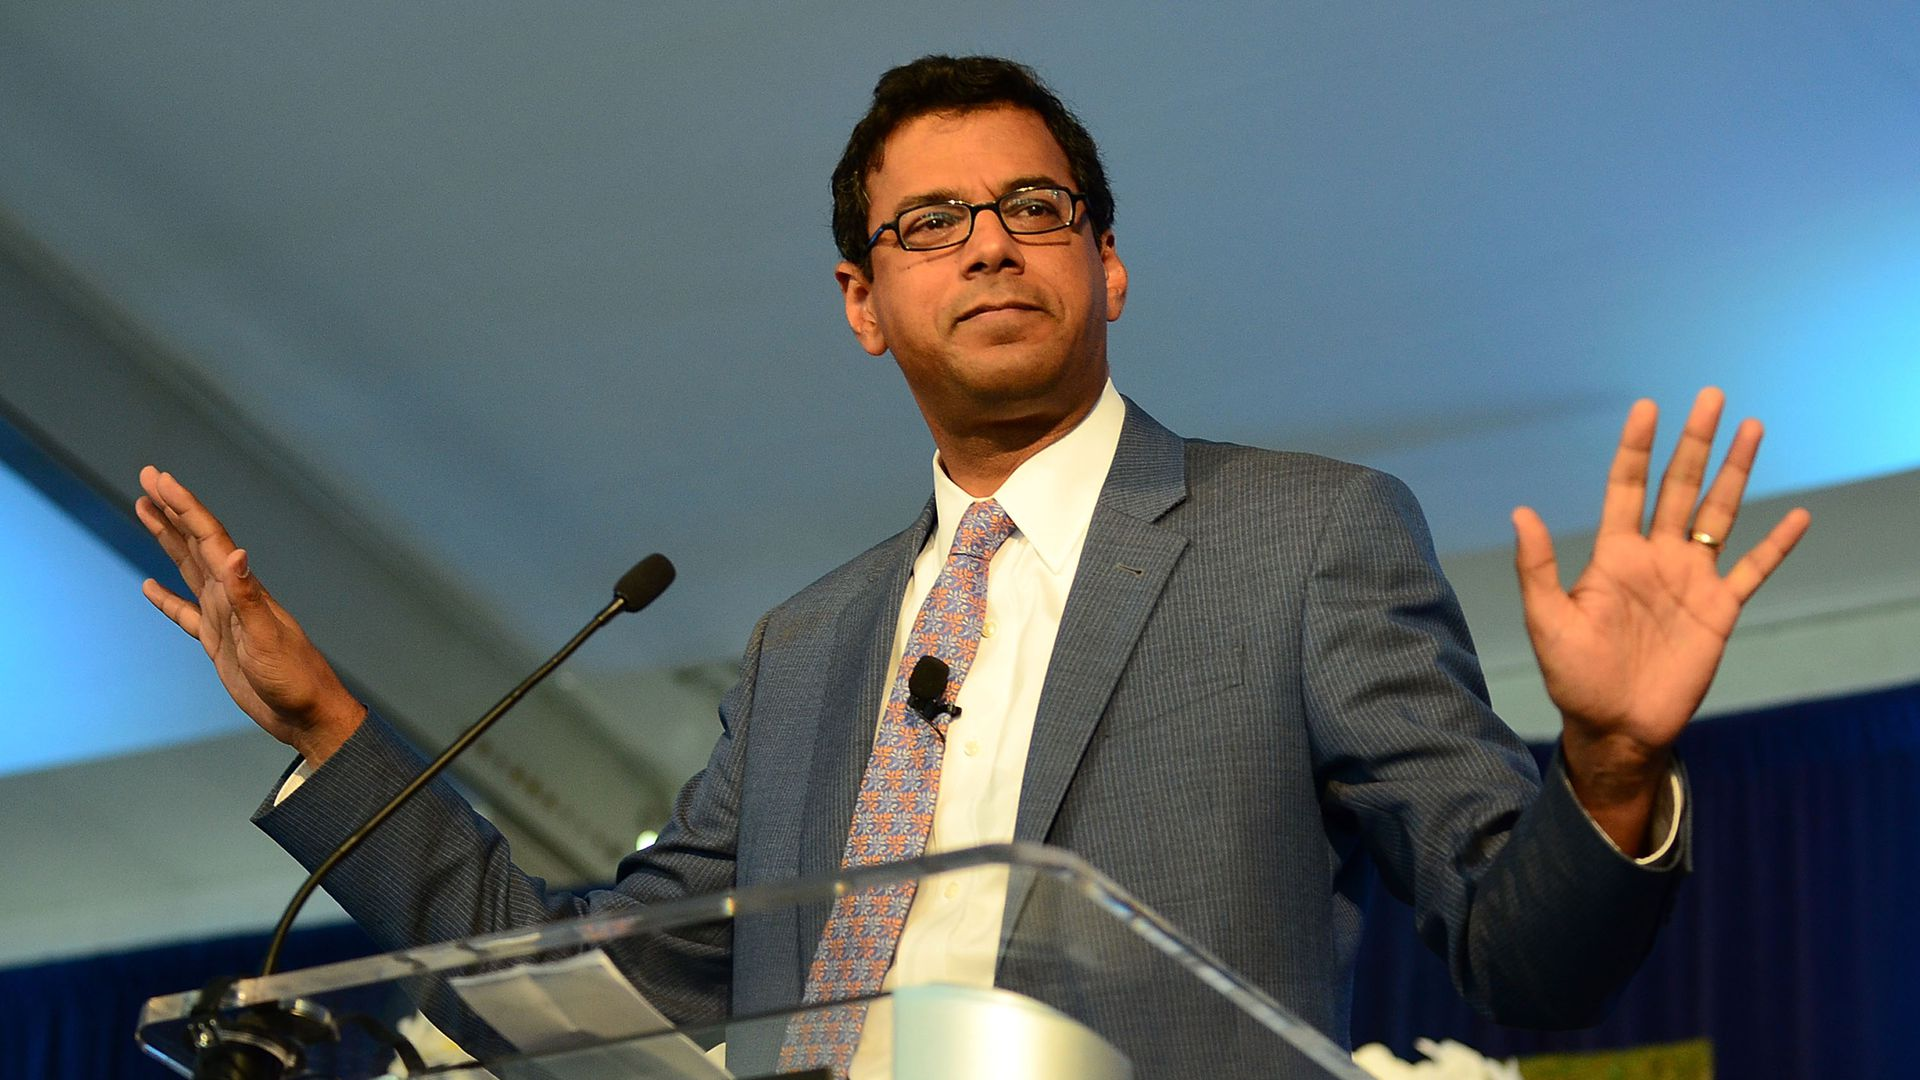 Atul Gawande speaks at a podium.